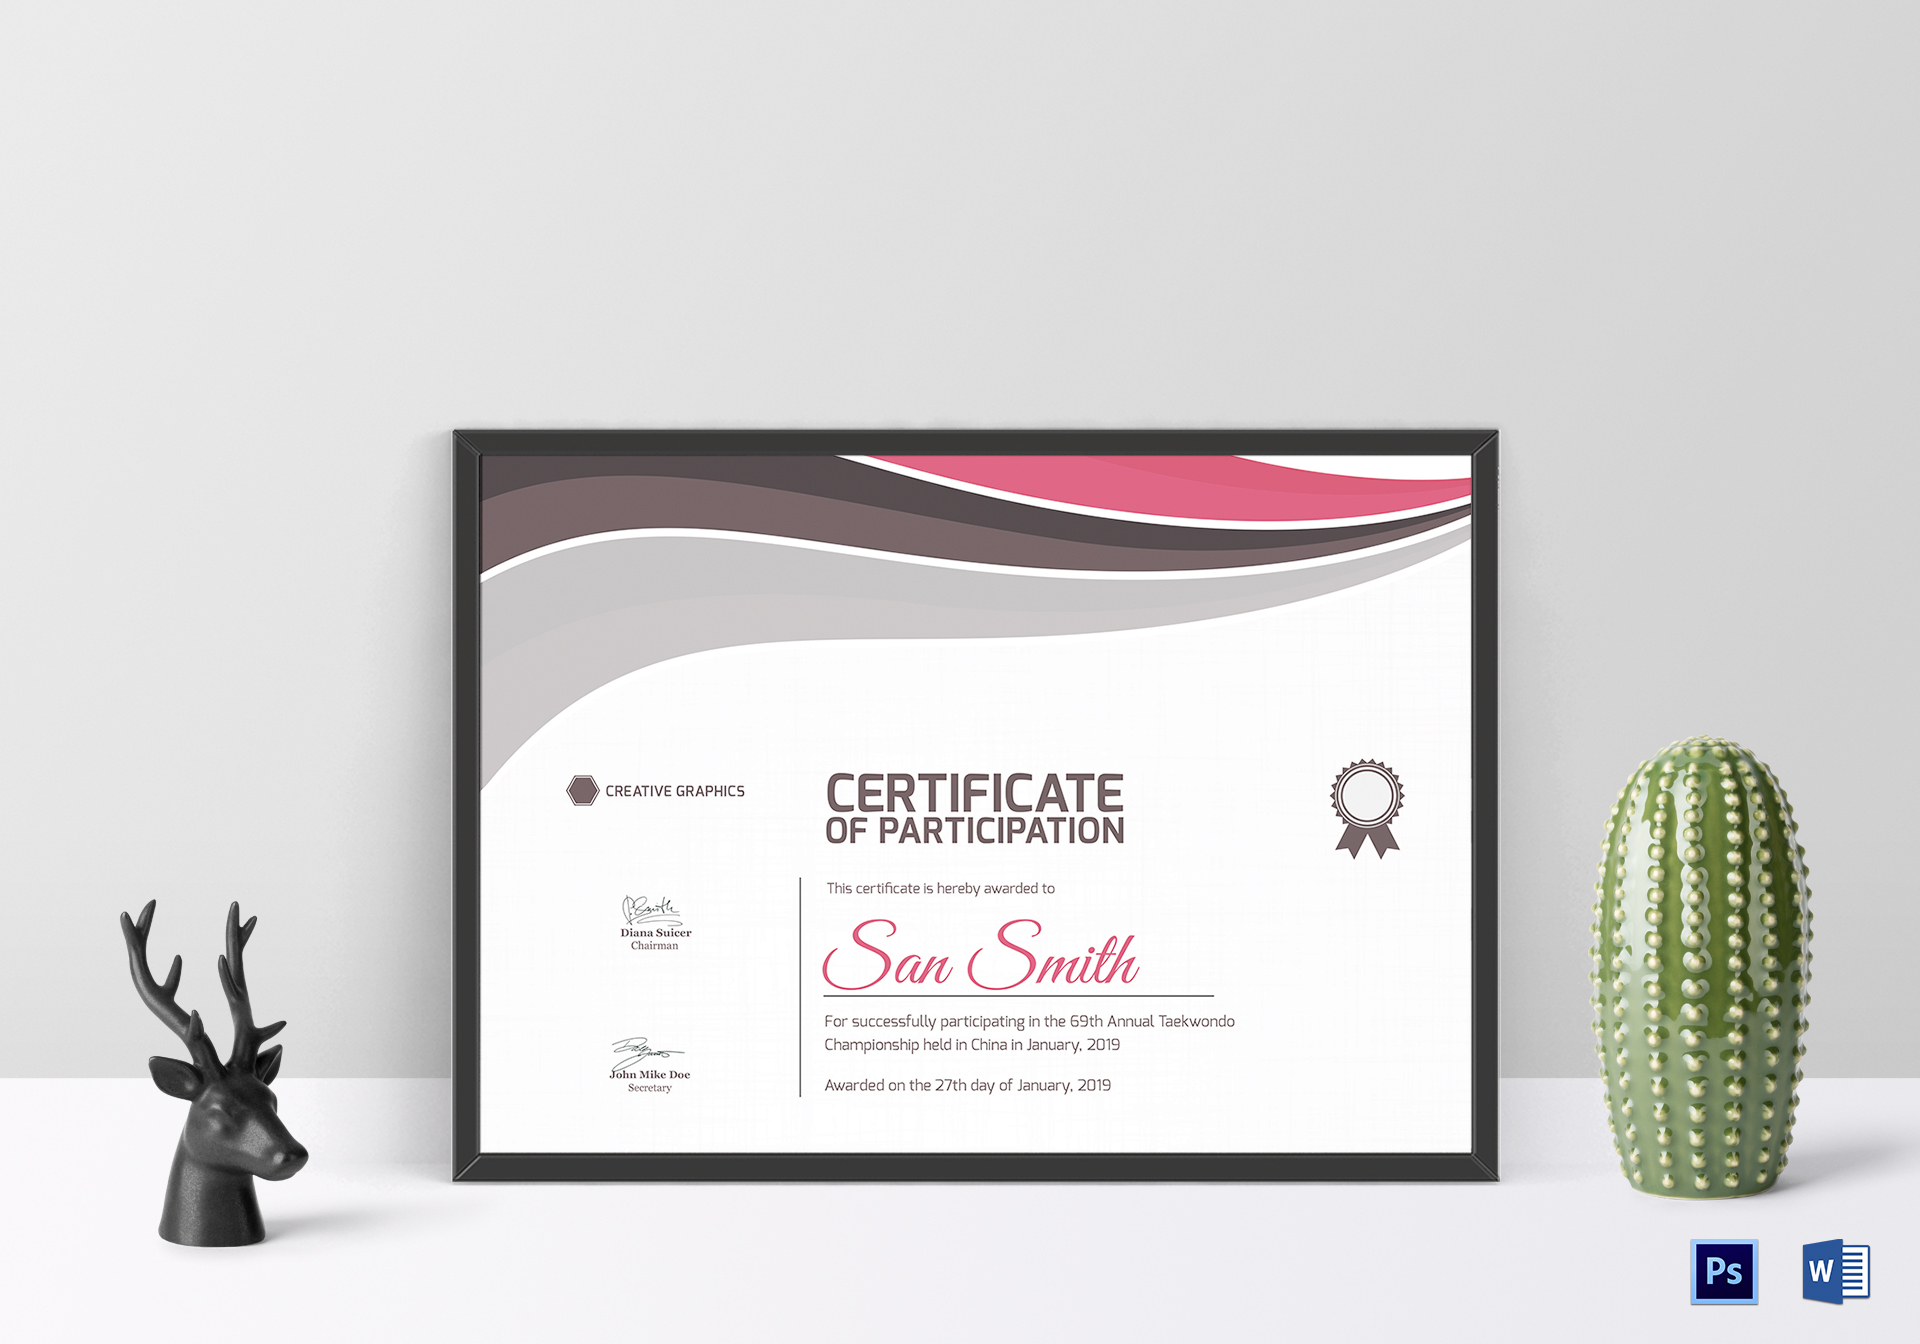 taekwondo participation certificate design template in psd